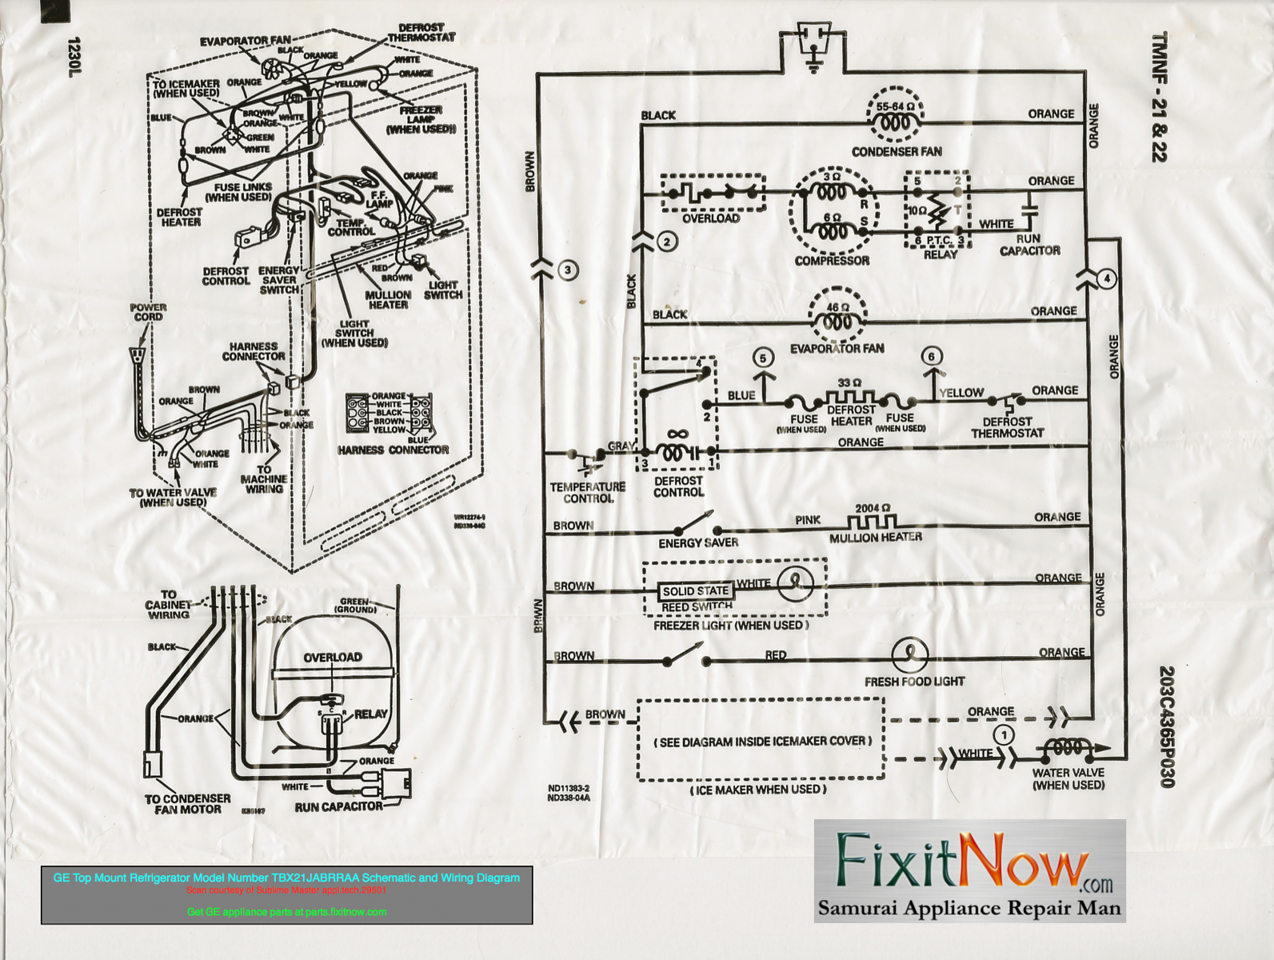 4904374061_e8eb3df6c6_o X2 wiring diagrams and schematics appliantology refrigerator wiring diagram at reclaimingppi.co